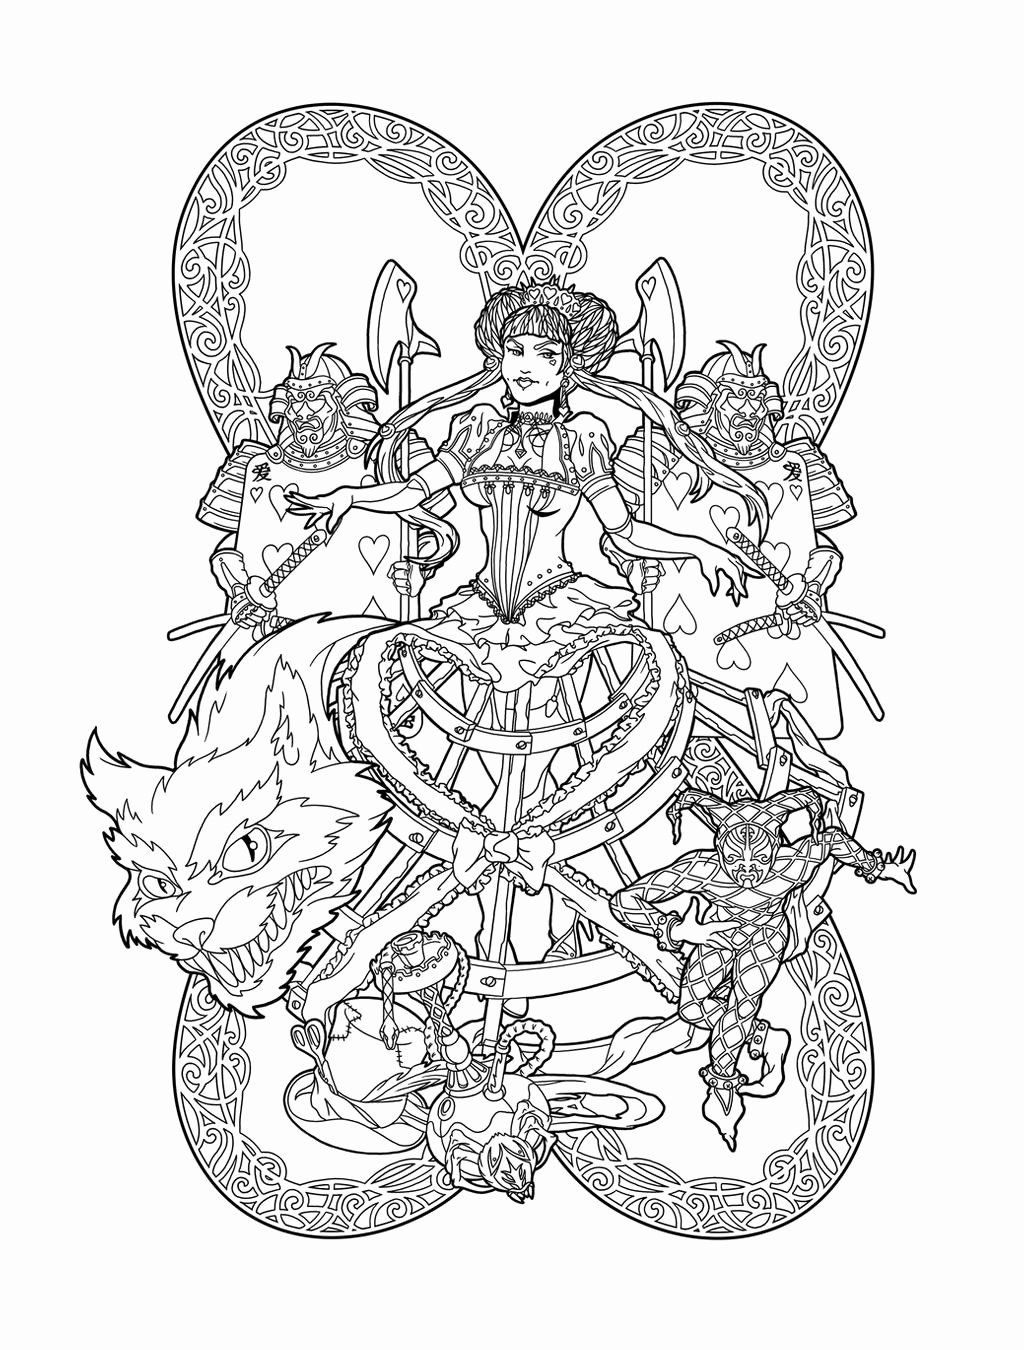 Red Queen Coloring Book Lovely Red Queen Of Wonderland Lines By Deviantashtareth On Red Queen Coloring Books Coloring Pages